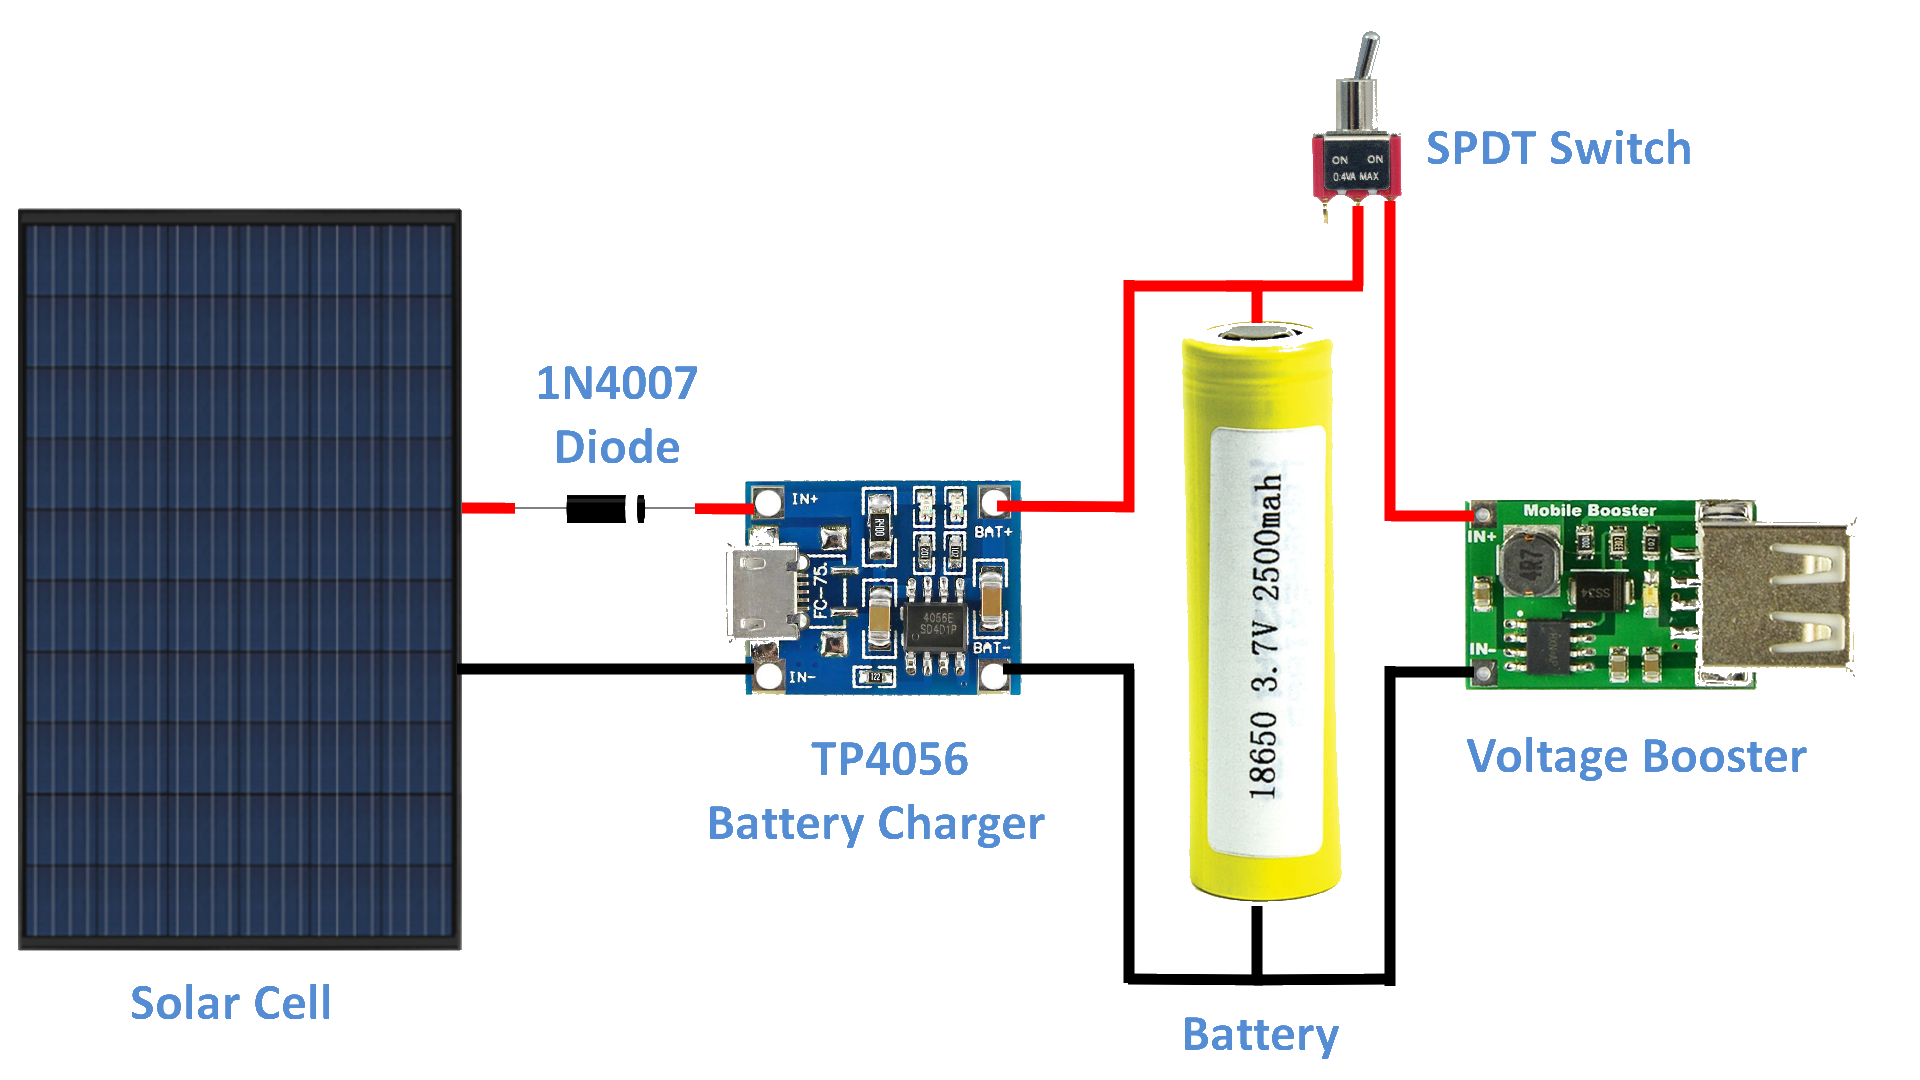 Diy Solar Battery Charger Arduino Maker Pro Usb Powered Mobile Phone Circuit Diagram The Assembly Is Very Simple Cell Connected To Tp4056 Charging